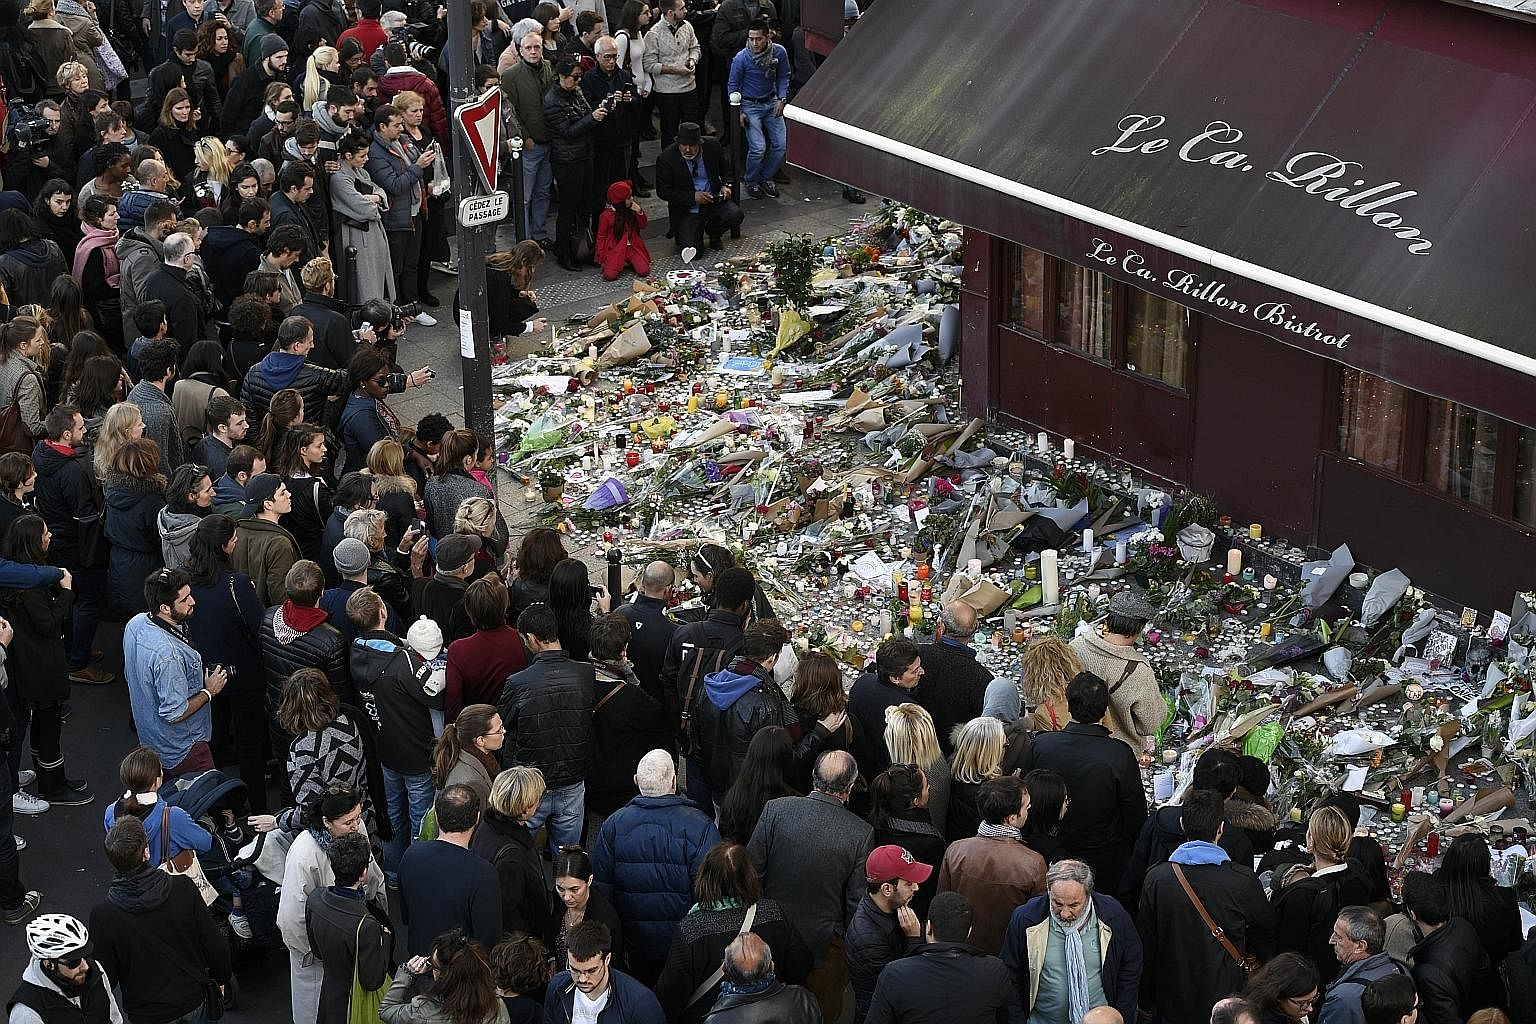 People gathering on Nov 16 for a memorial at a restaurant attacked by gunmen days earlier, in Paris.